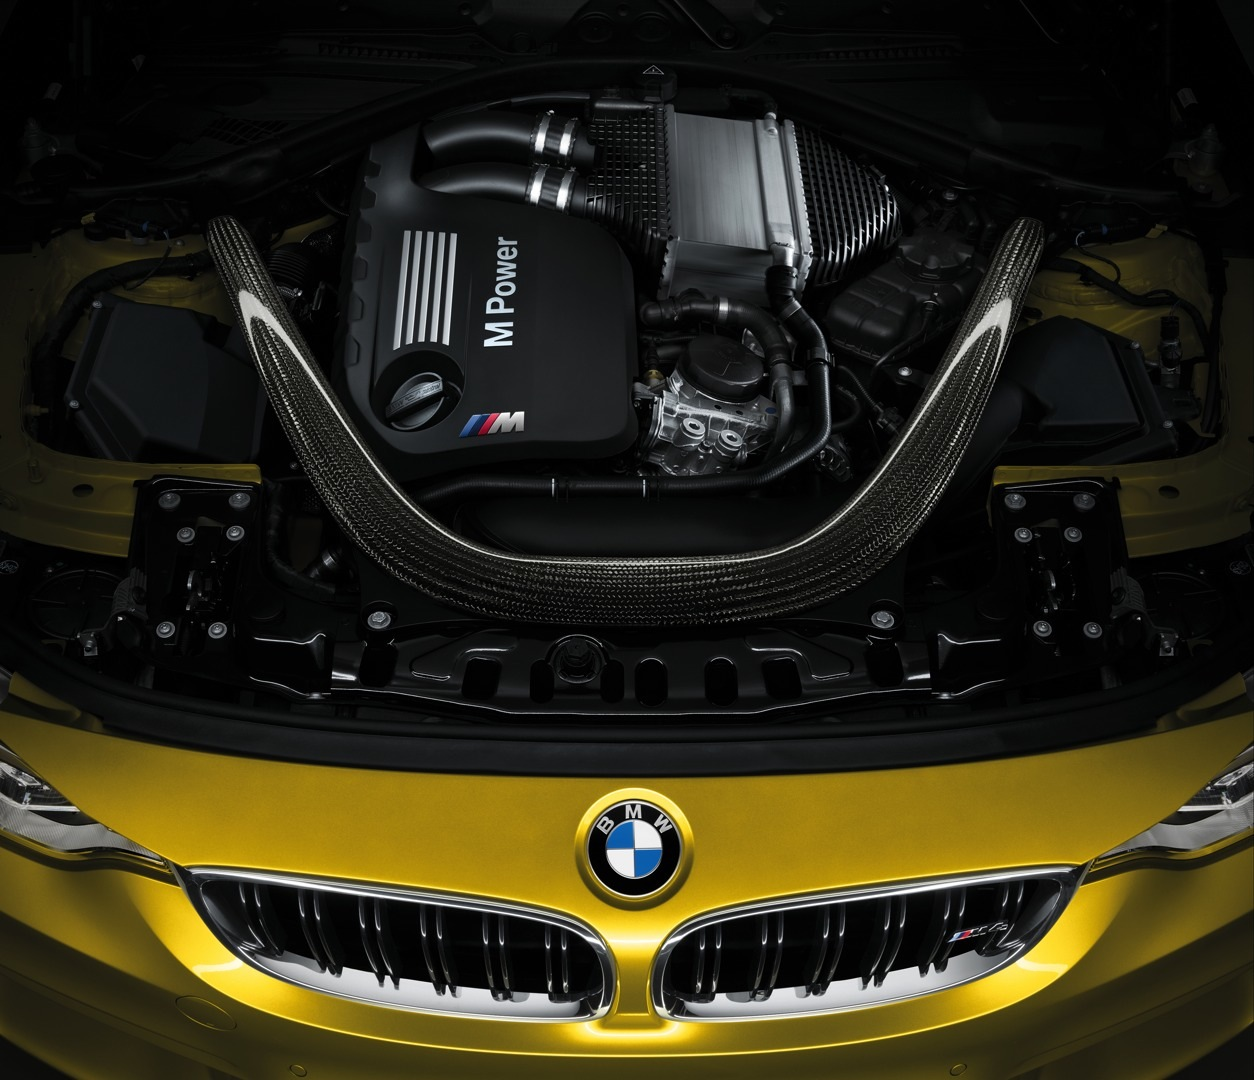 BMW M3 Sedan and M4 Coupe Officially Unveiled - autoevolution